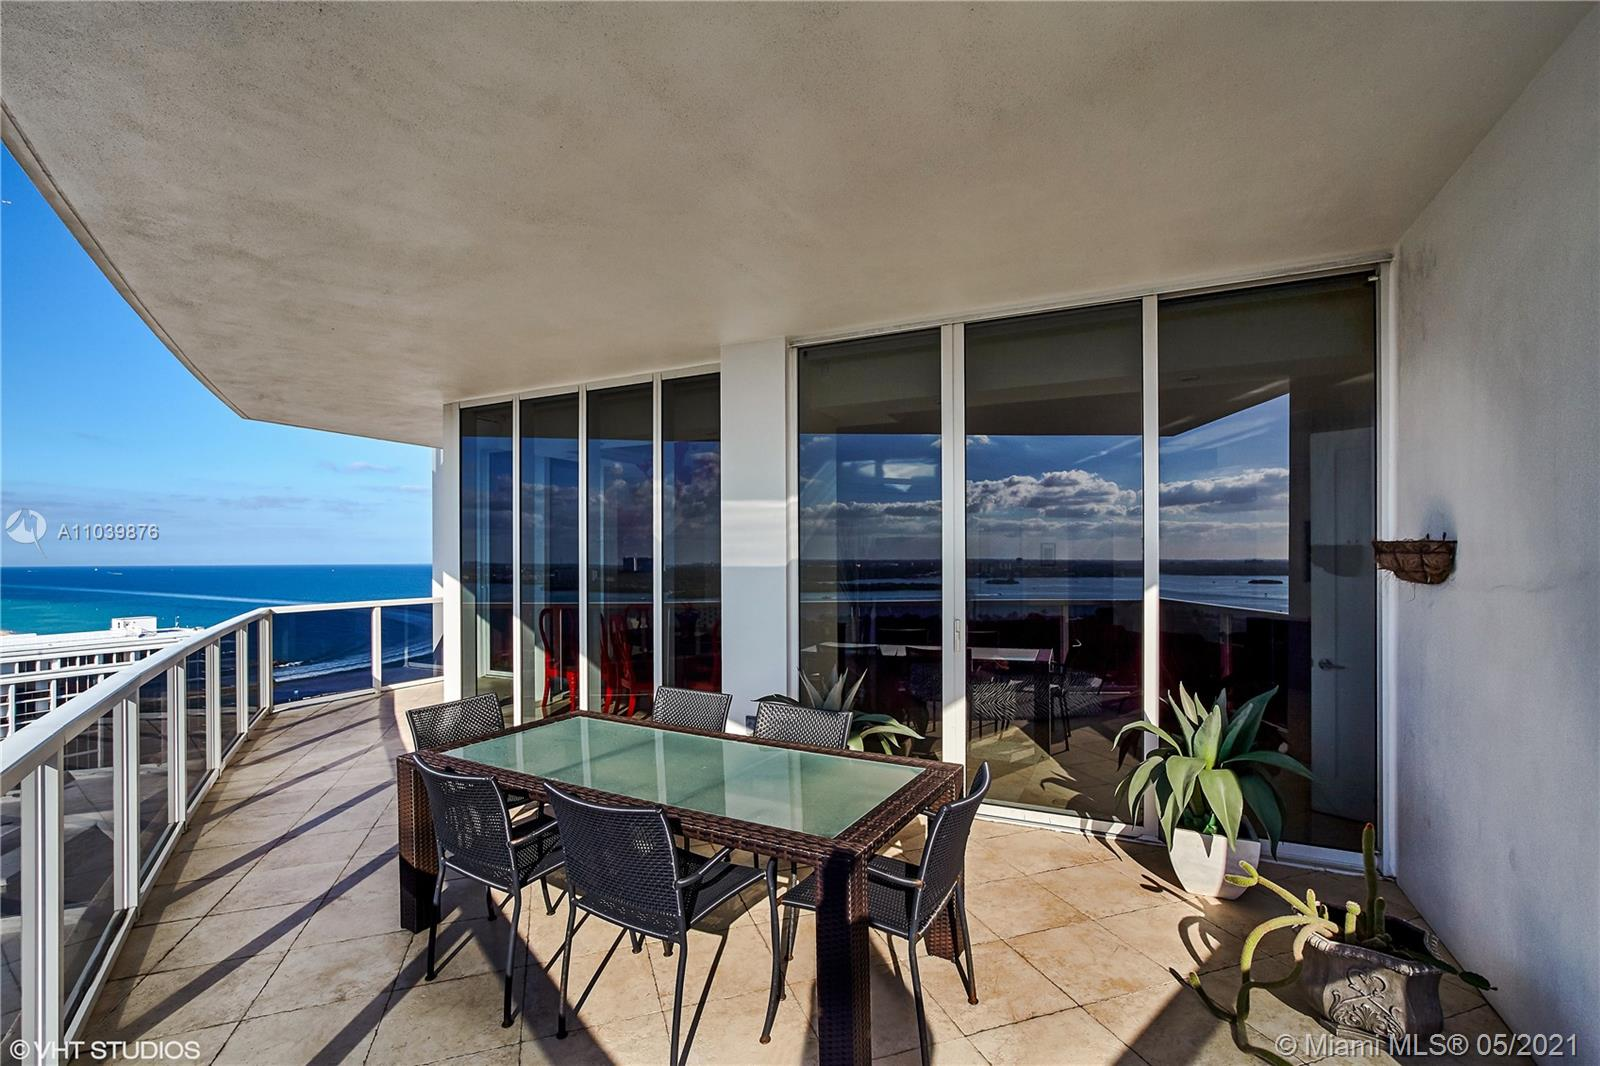 Photo of 10225 Collins Ave #1703, Bal Harbour, Florida, 33154 - Expansive, sun-filled living and dining area.